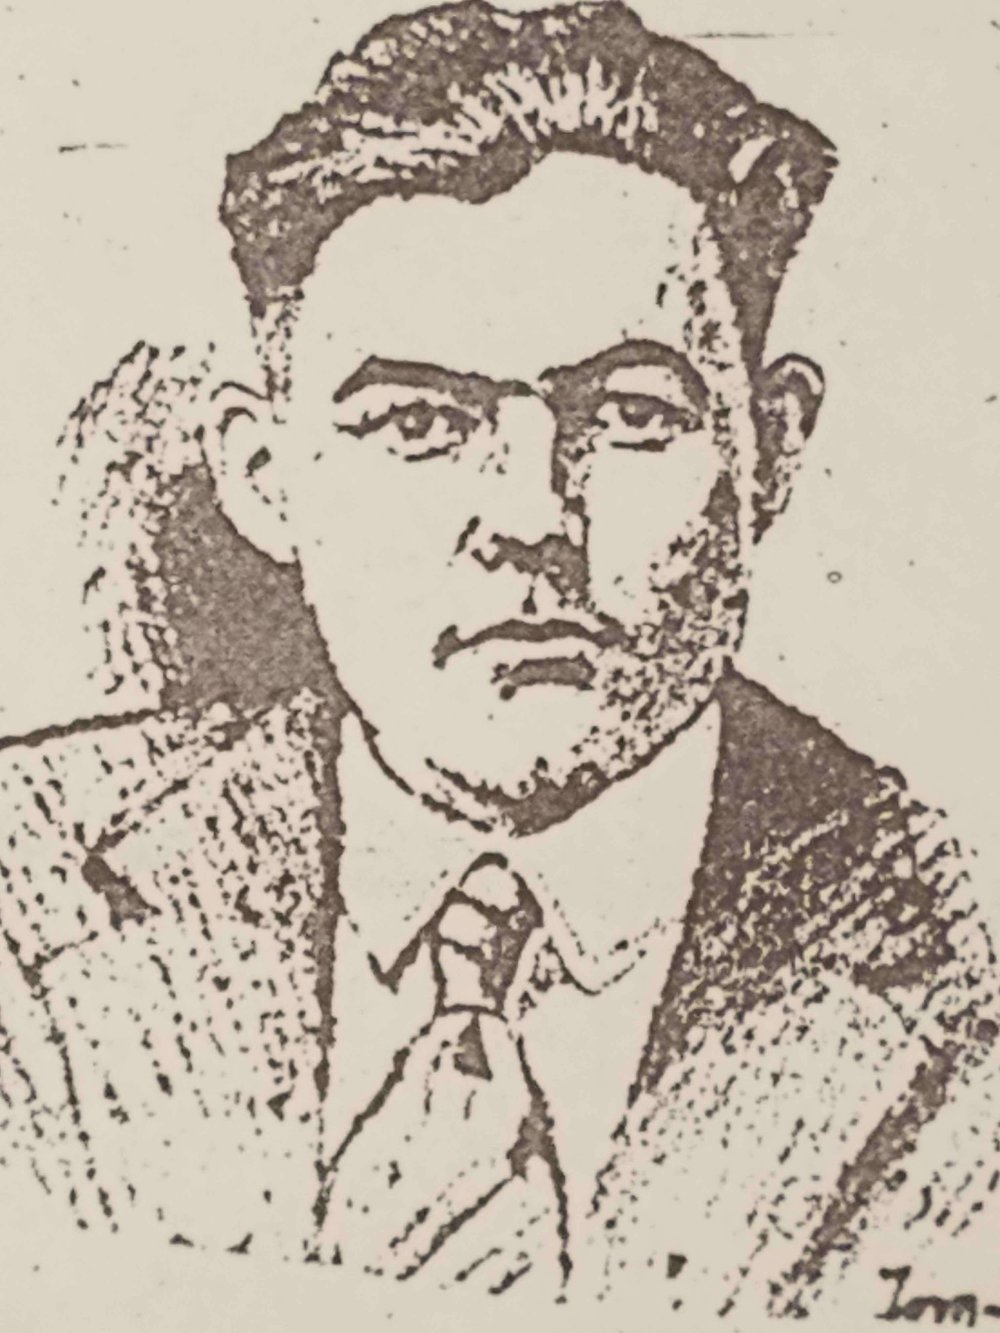 On the way to war - A Kansas City Star portrait of Hemingway, published in May 1918, as he was on his way to the ambulance service in Italy.